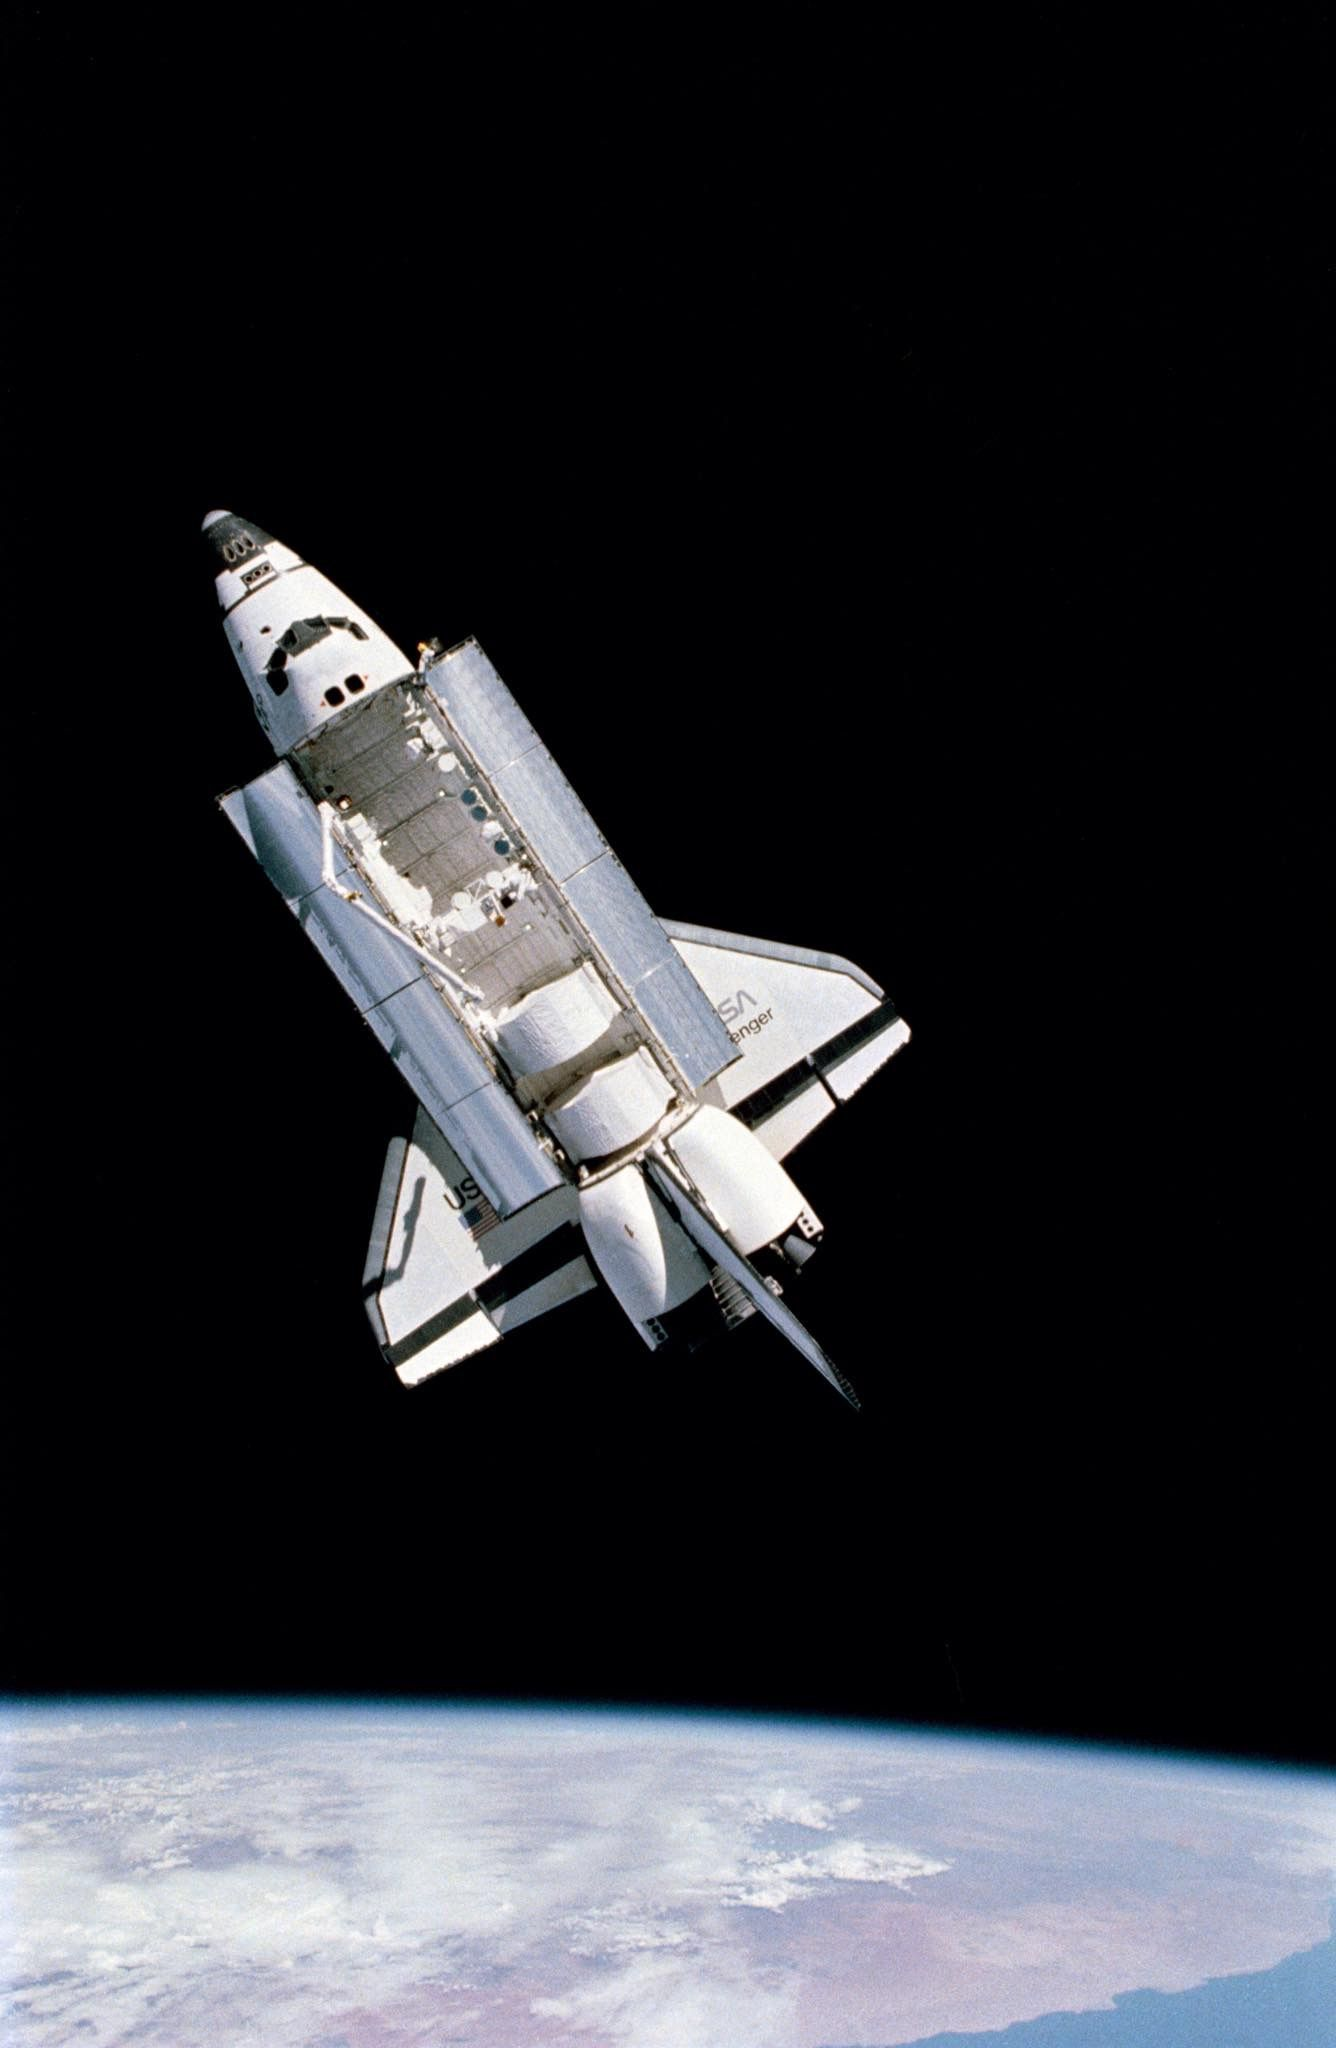 Pin By Thomas Guettler On Nasa And The History Of The Space Program Nasa Space Shuttle Space Shuttle Nasa Spaceship